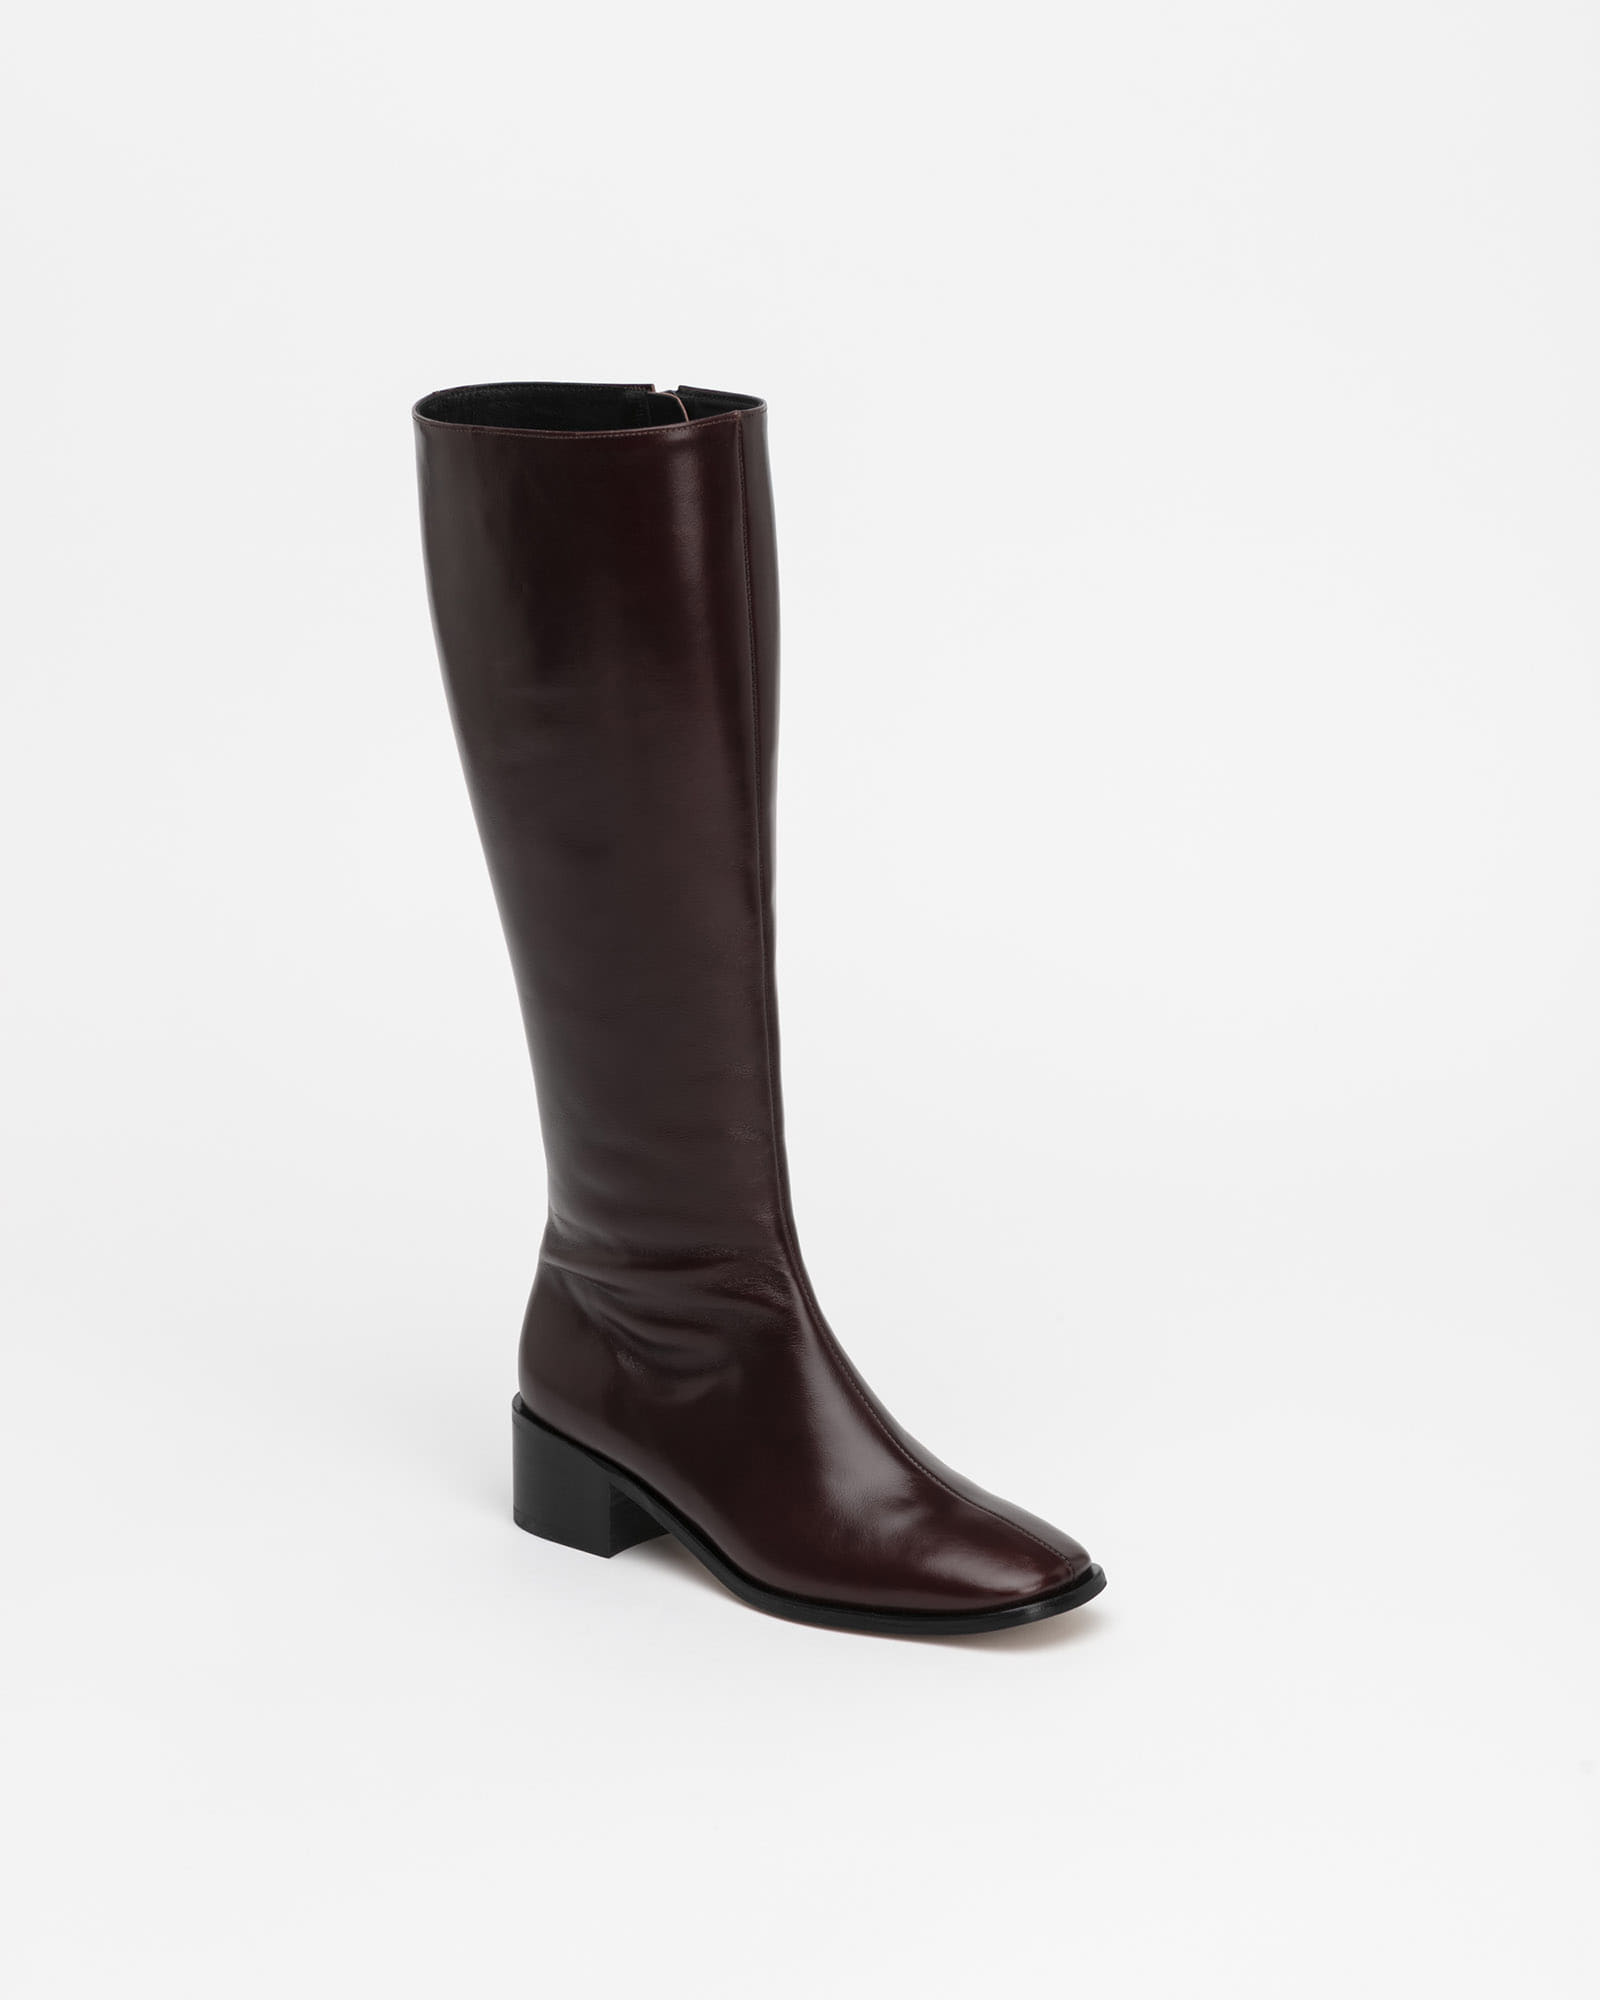 Beaucoup Riding Boots in Textured Wine